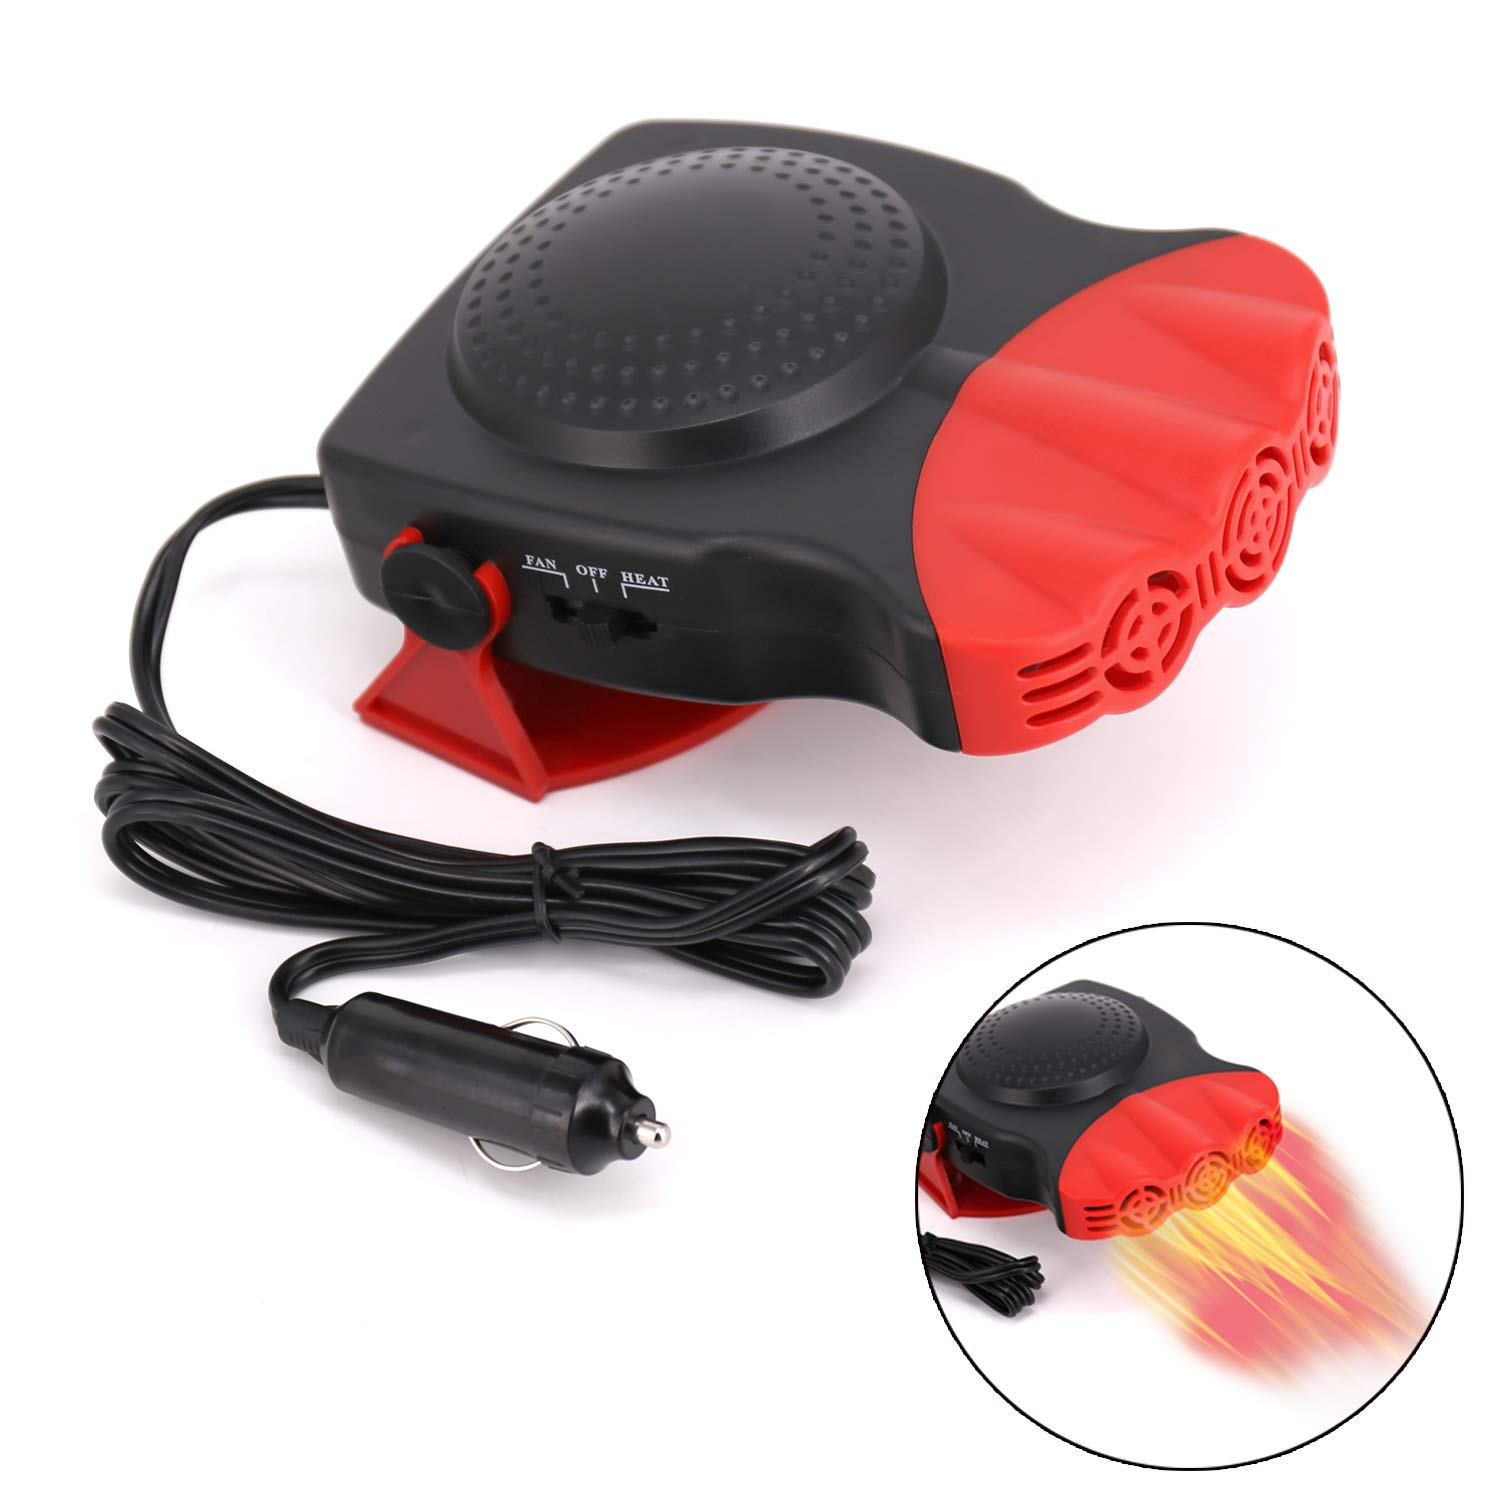 Upgrade Car Heater, 2 in 1 Portable Fast Heating Car Heater with Heating & Cooling Function Defroster Defogger 12V 150W, 3-Outlet Plug Adjustable Thermostat in Cigarette Lighter by drtulz